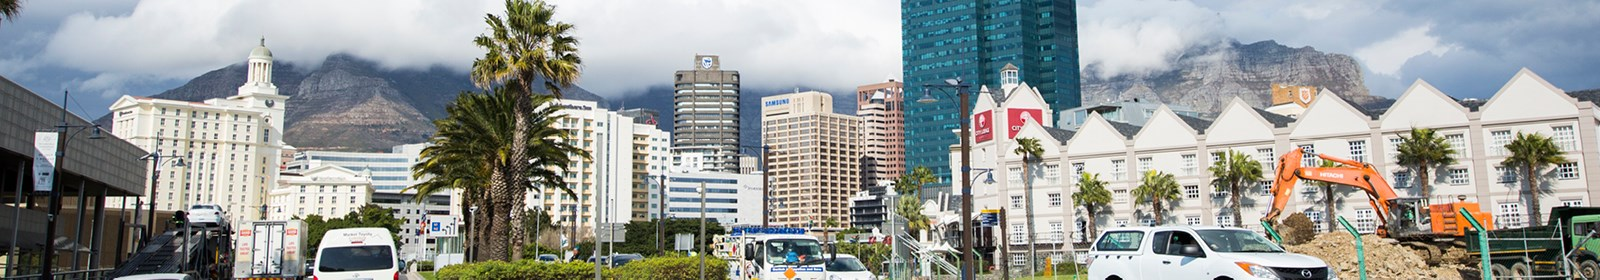 Property investment is transforming Cape Town's CBD